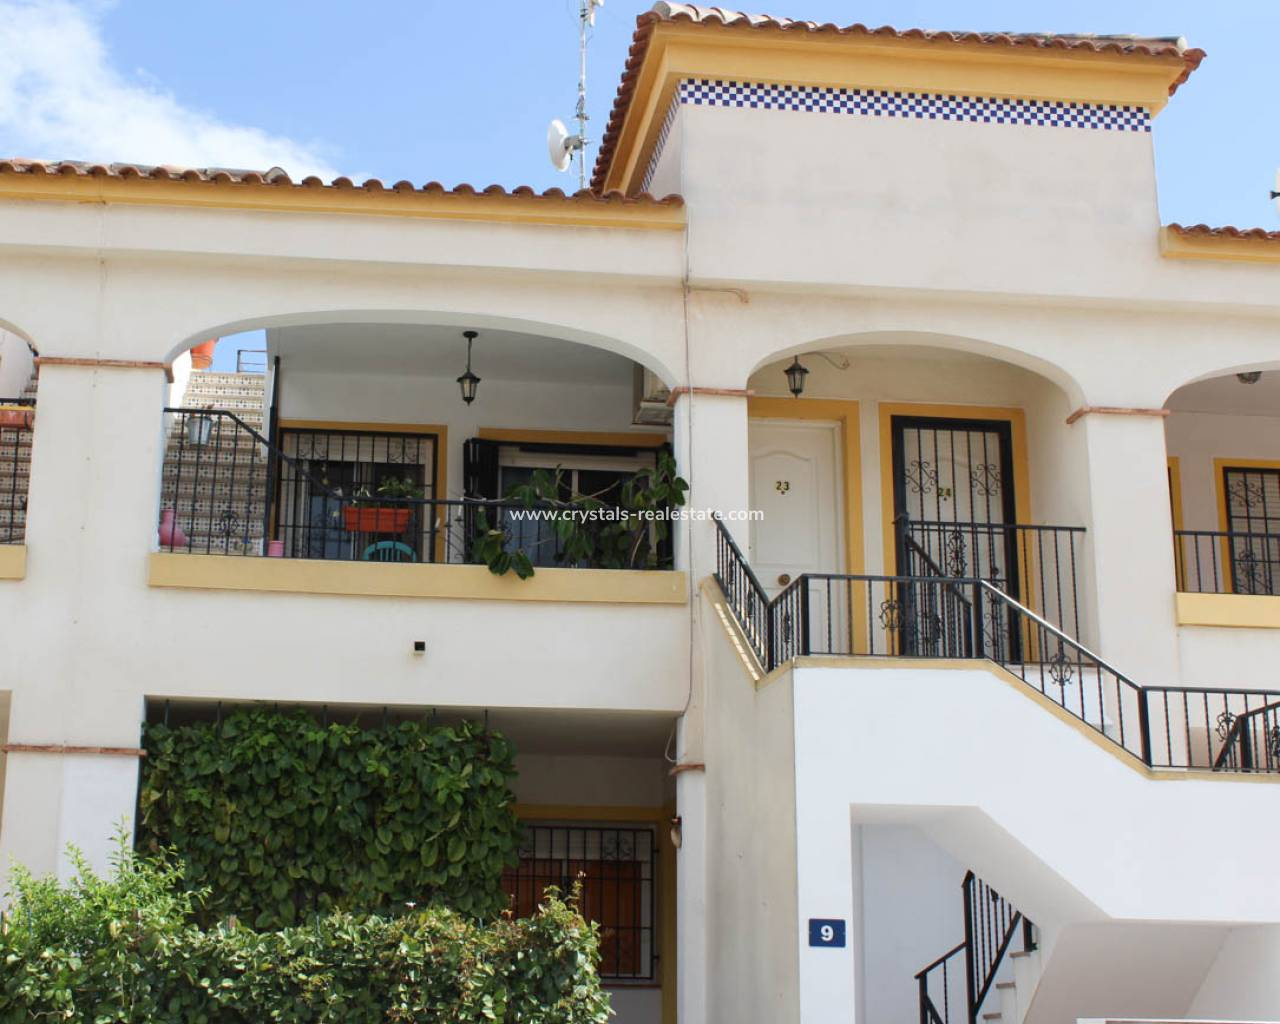 Appartement - Resale - Orihuela - Orihuela